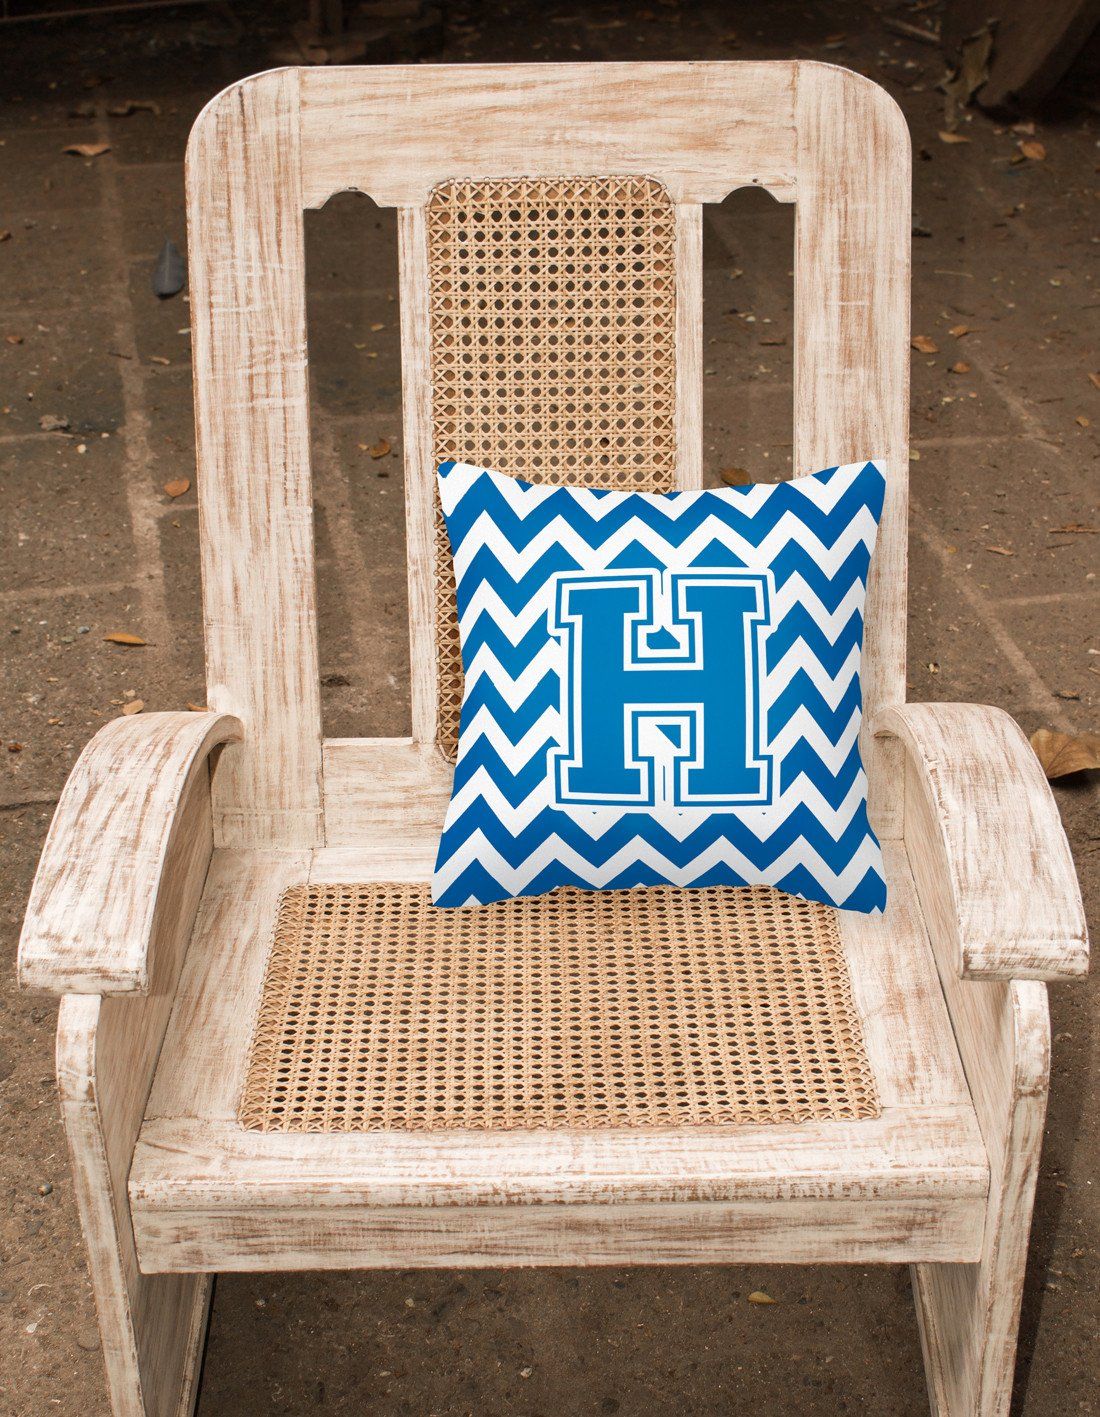 Letter H Chevron Blue and White Fabric Decorative Pillow CJ1056-HPW1414 by Caroline's Treasures